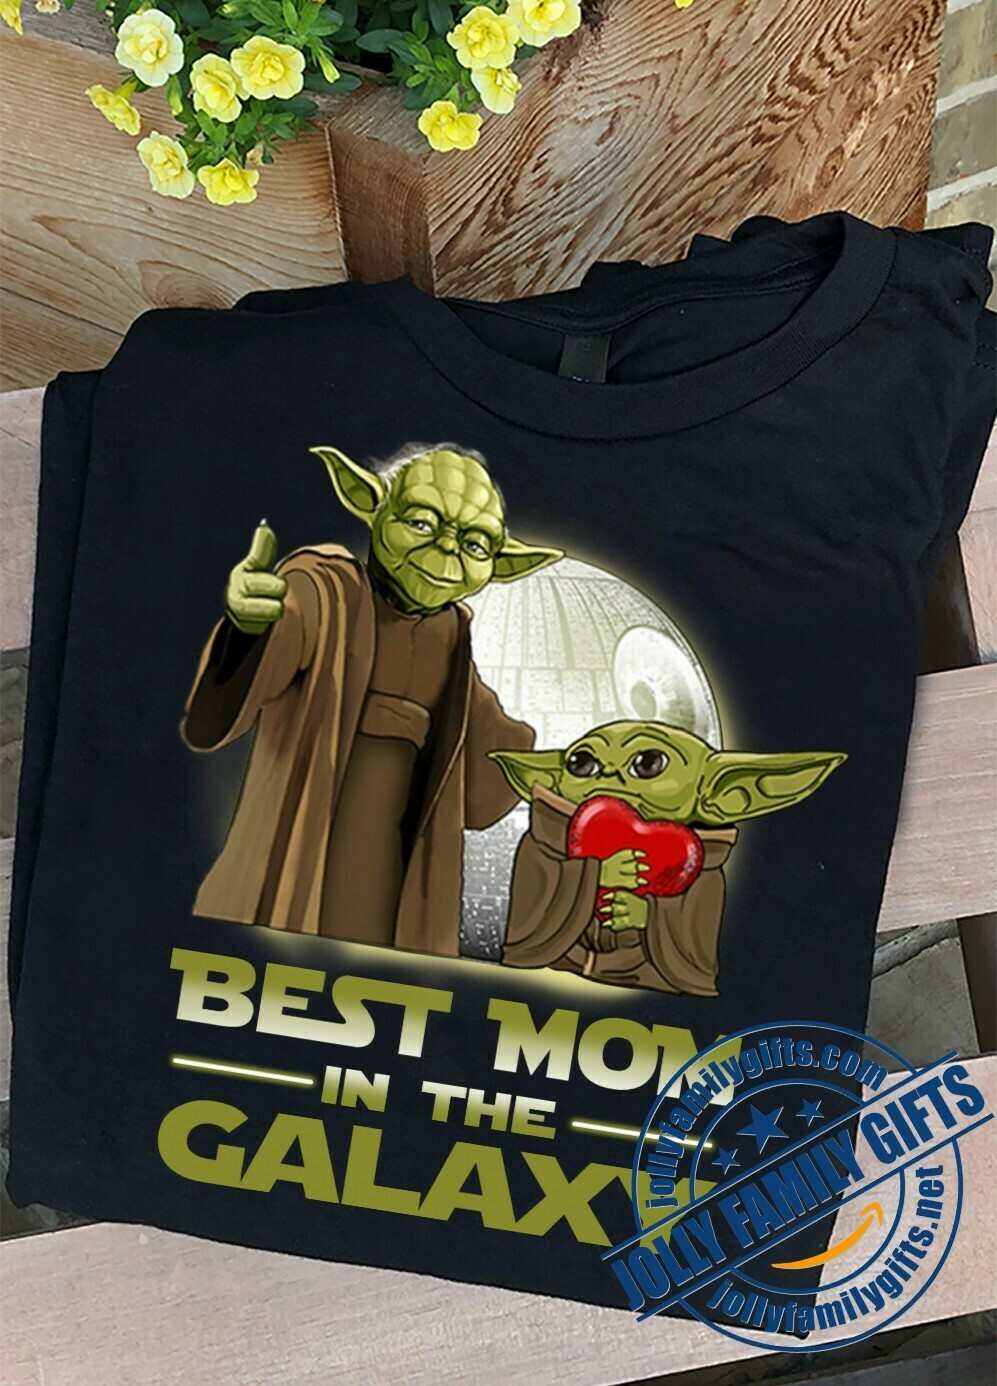 Best Mom In the Galaxy of Adventures Baby Yoda Hug Heart The Mandalorian with death Star Wars  Unisex T-Shirt Hoodie Sweatshirt Sweater Plus Size for Ladies Women Men Kids Youth Gifts Tee Jolly Family